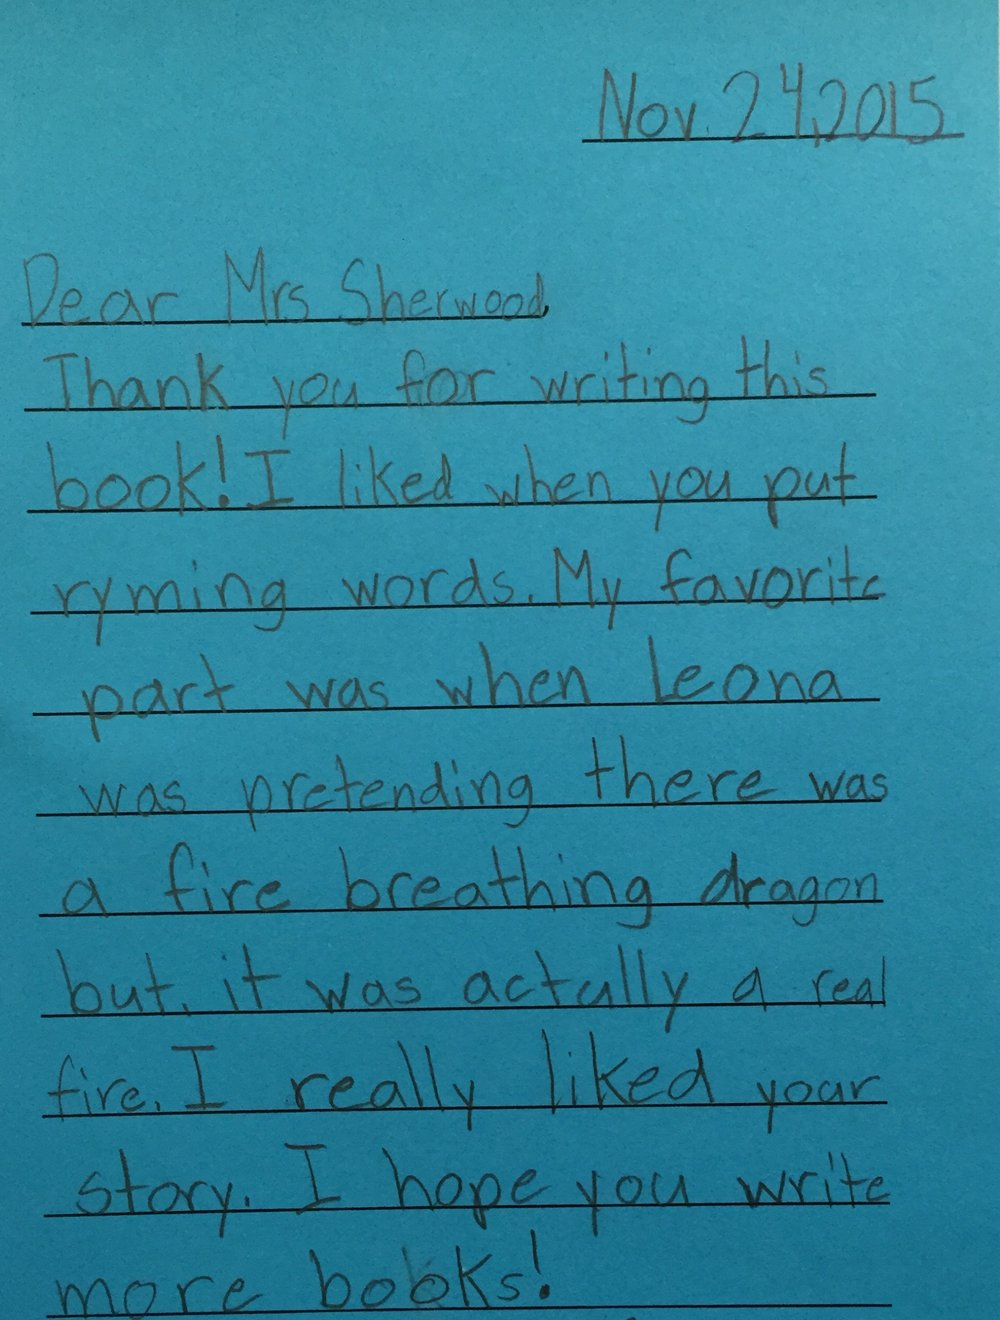 These letters are from a Fairfax, VA school where the librarian read my book to the class.